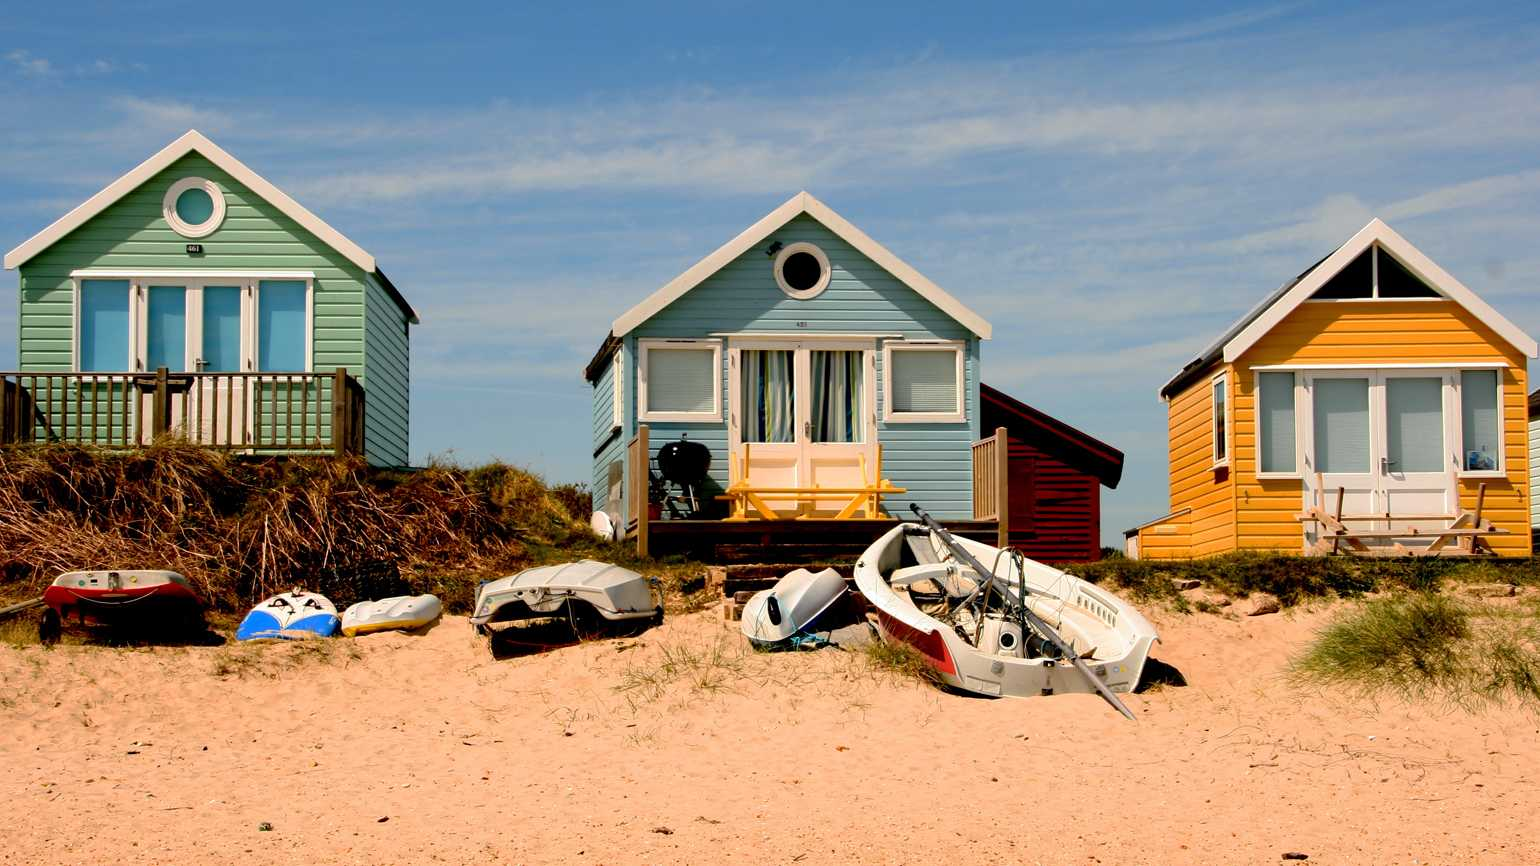 Three colorful beach houses lined up.